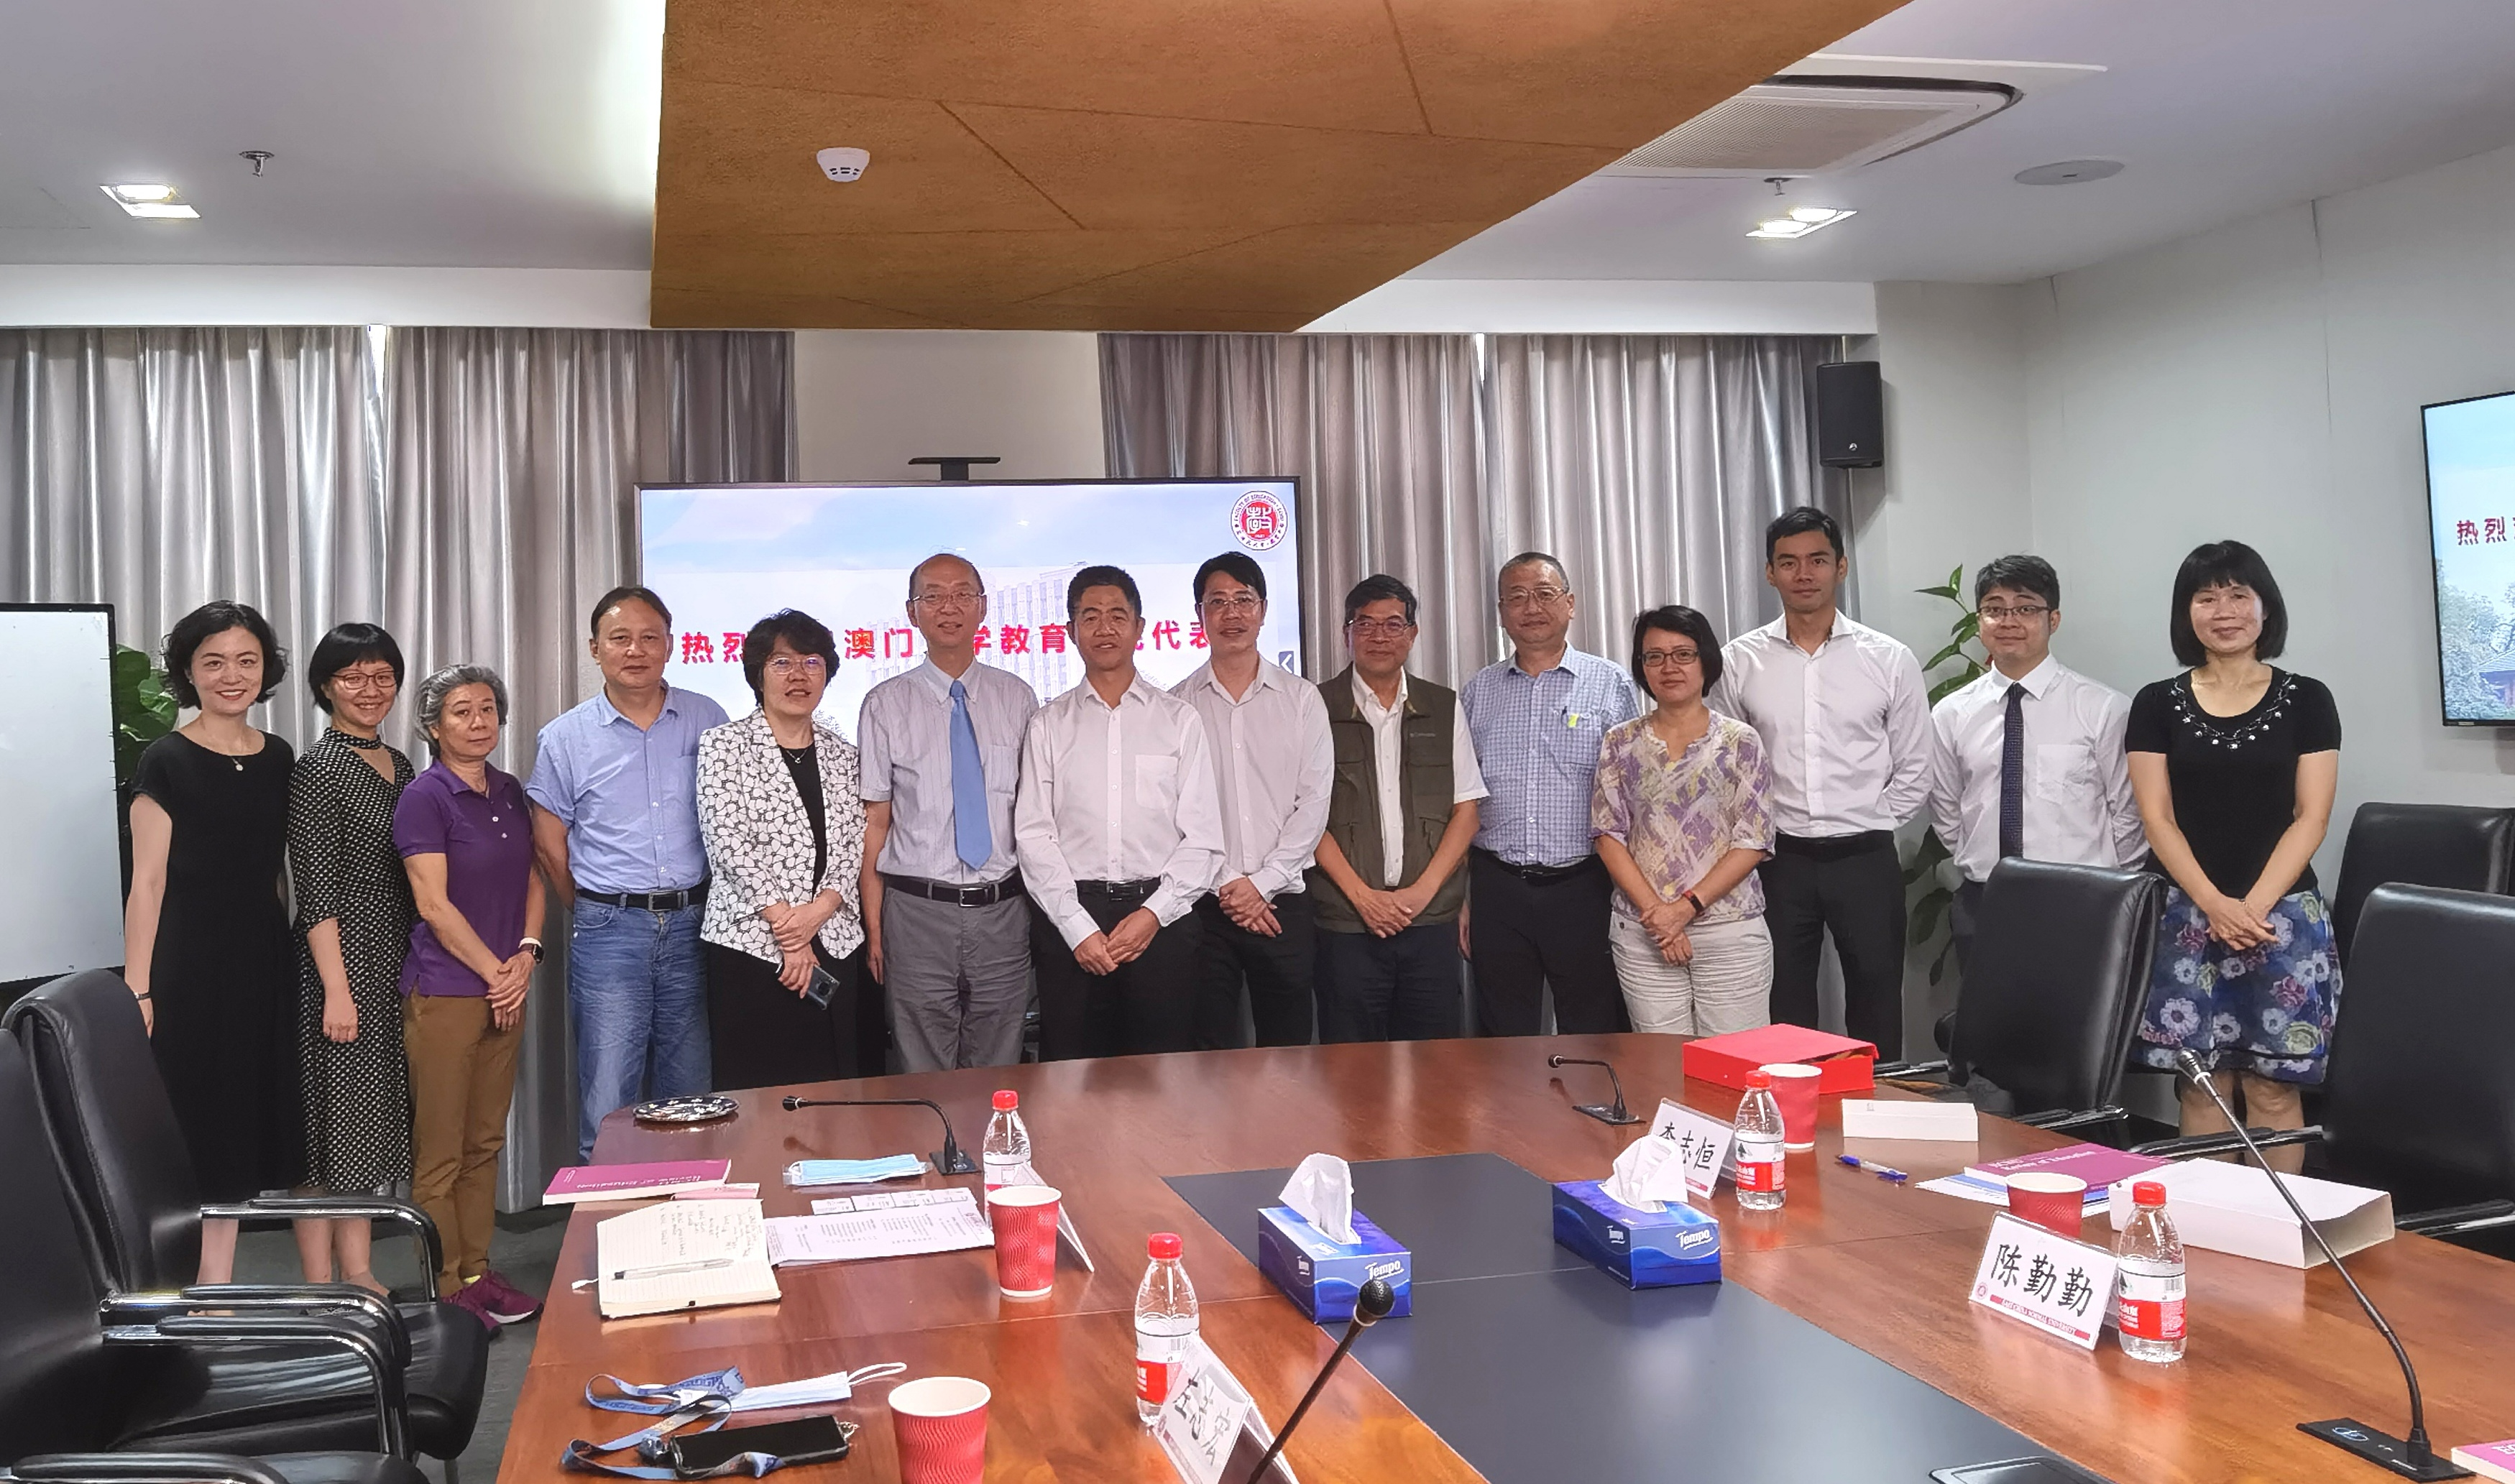 Delegation from the Faculty of Education of University of Macau visits the Faculty of Education of ECNU